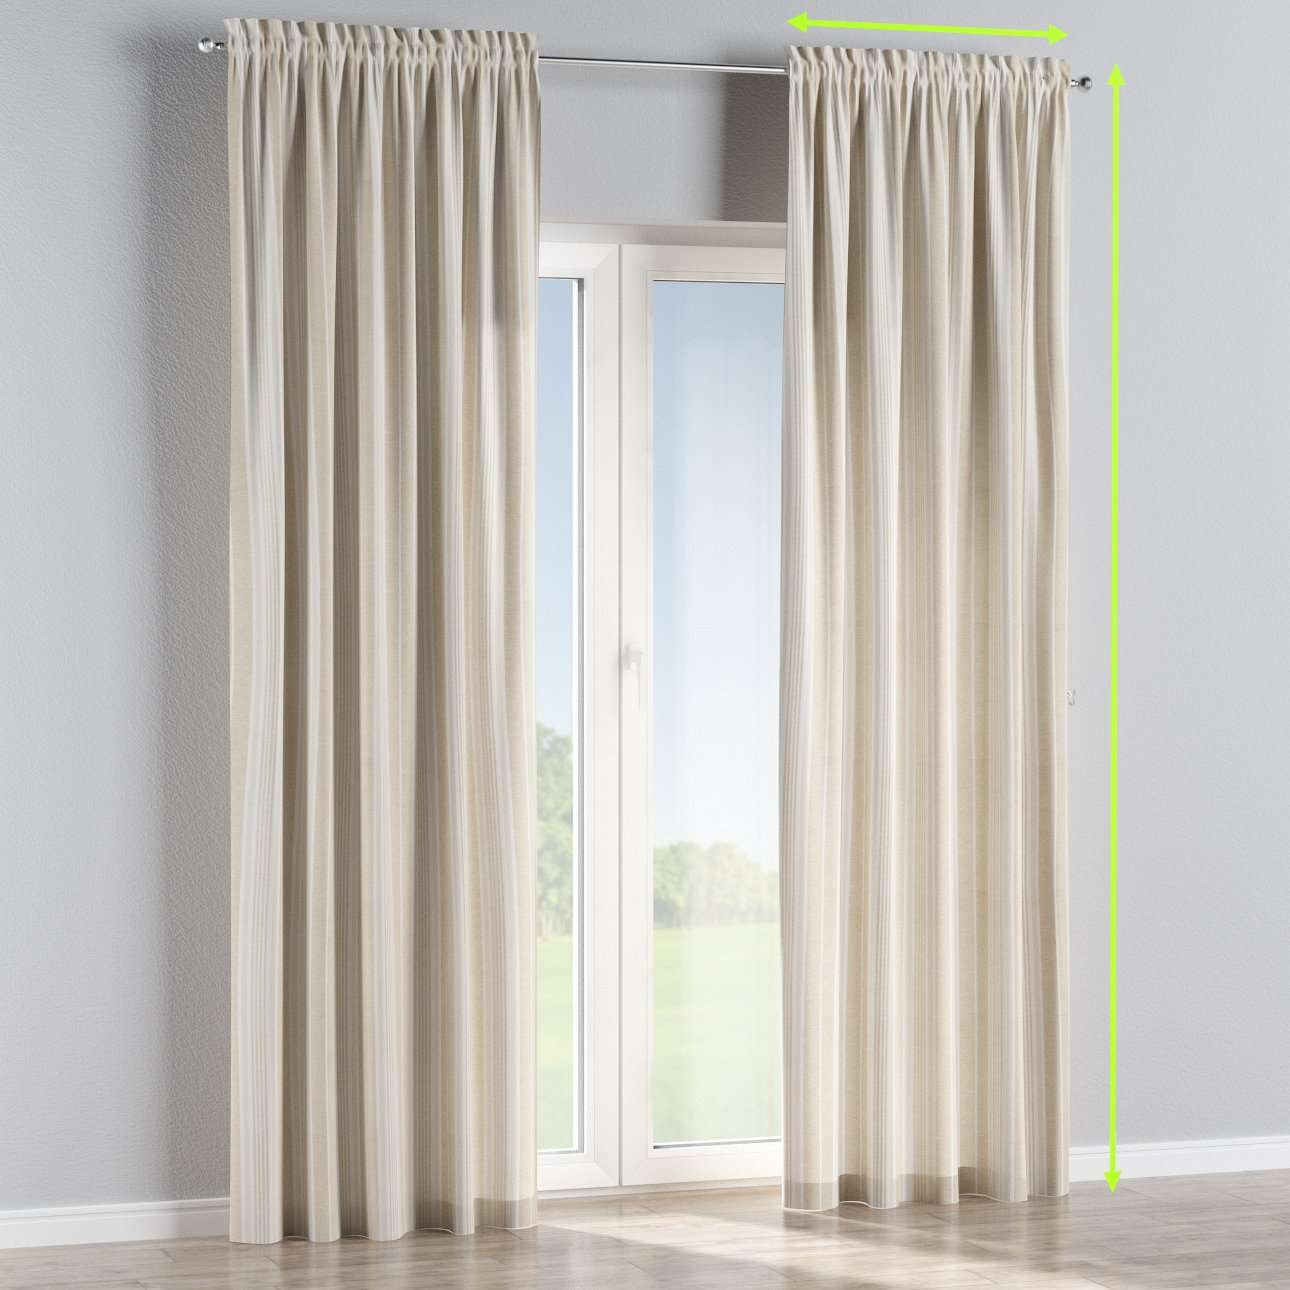 Slot and frill lined curtains in collection Rustica, fabric: 138-24